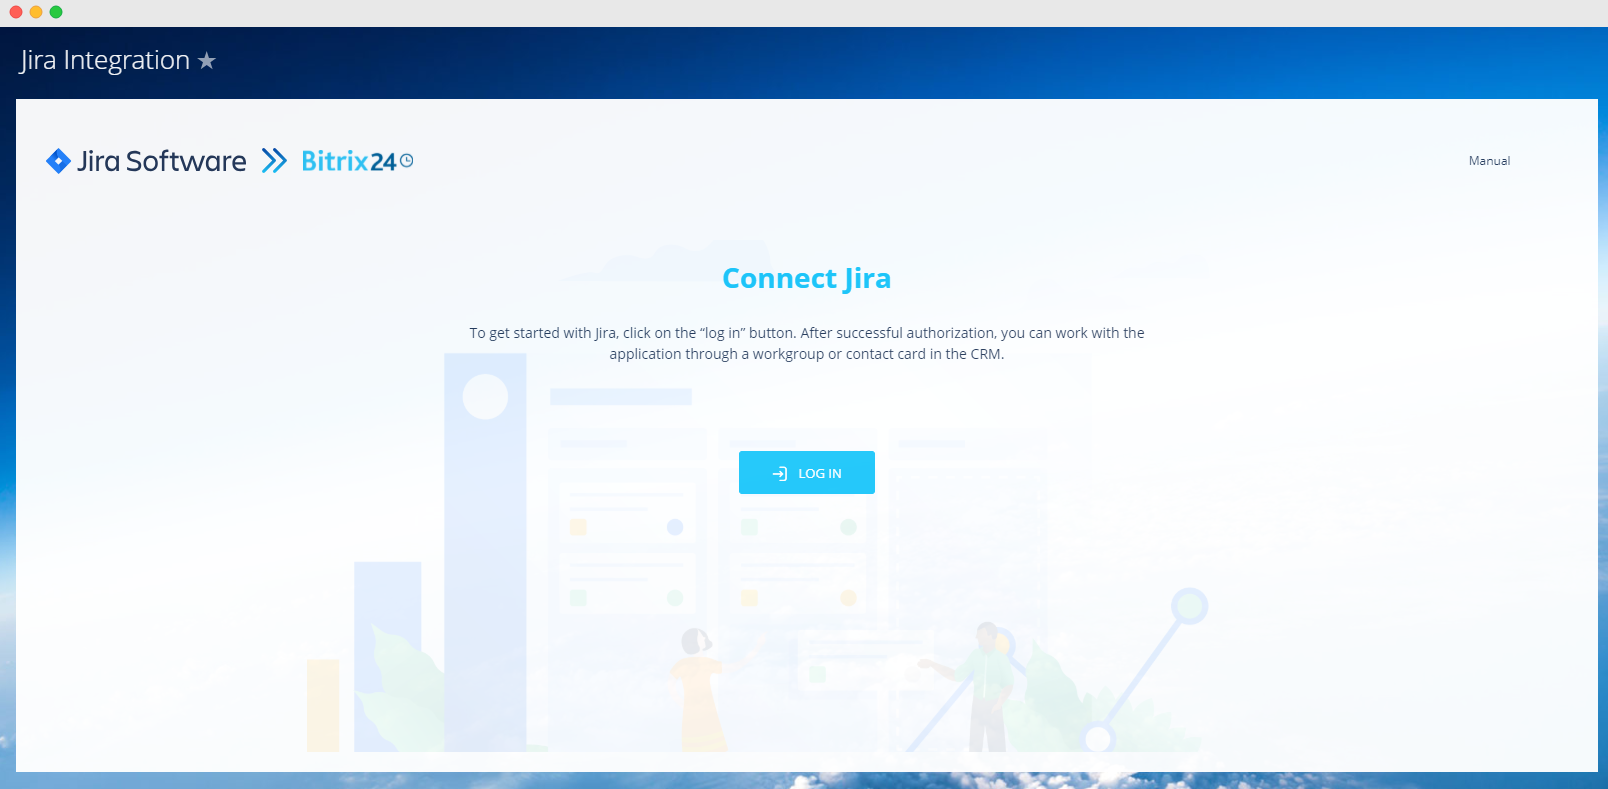 Jira integration for Bitrix24 is out!